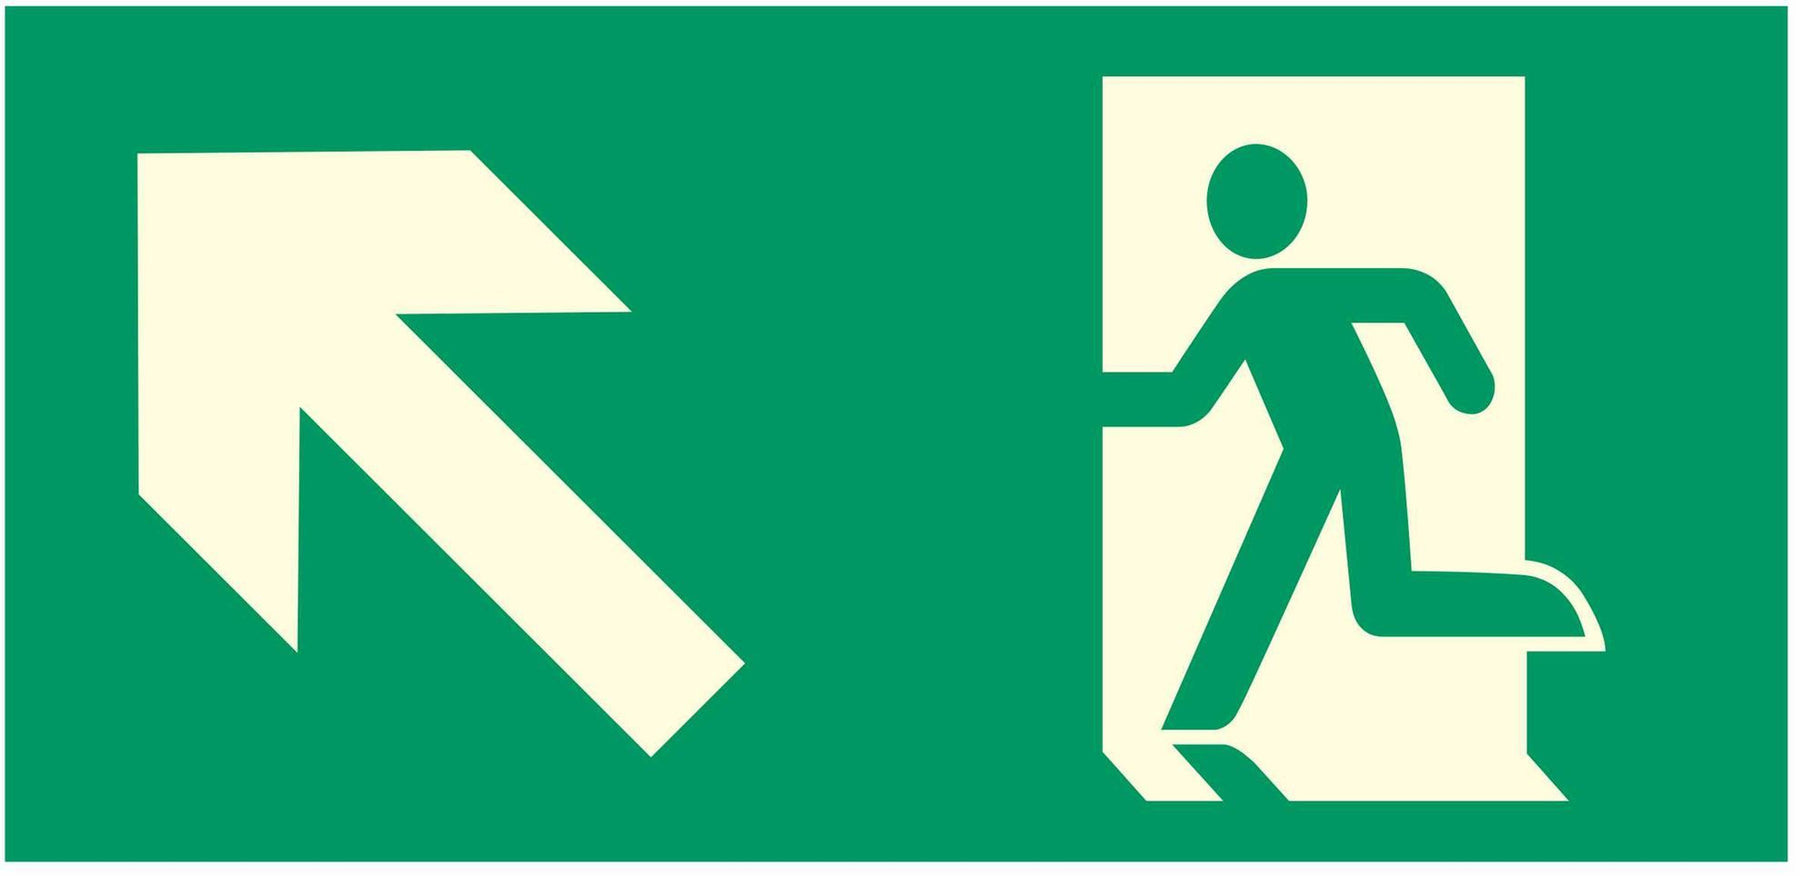 Emergency Exit  - Running Man Left - Up Left Arrow